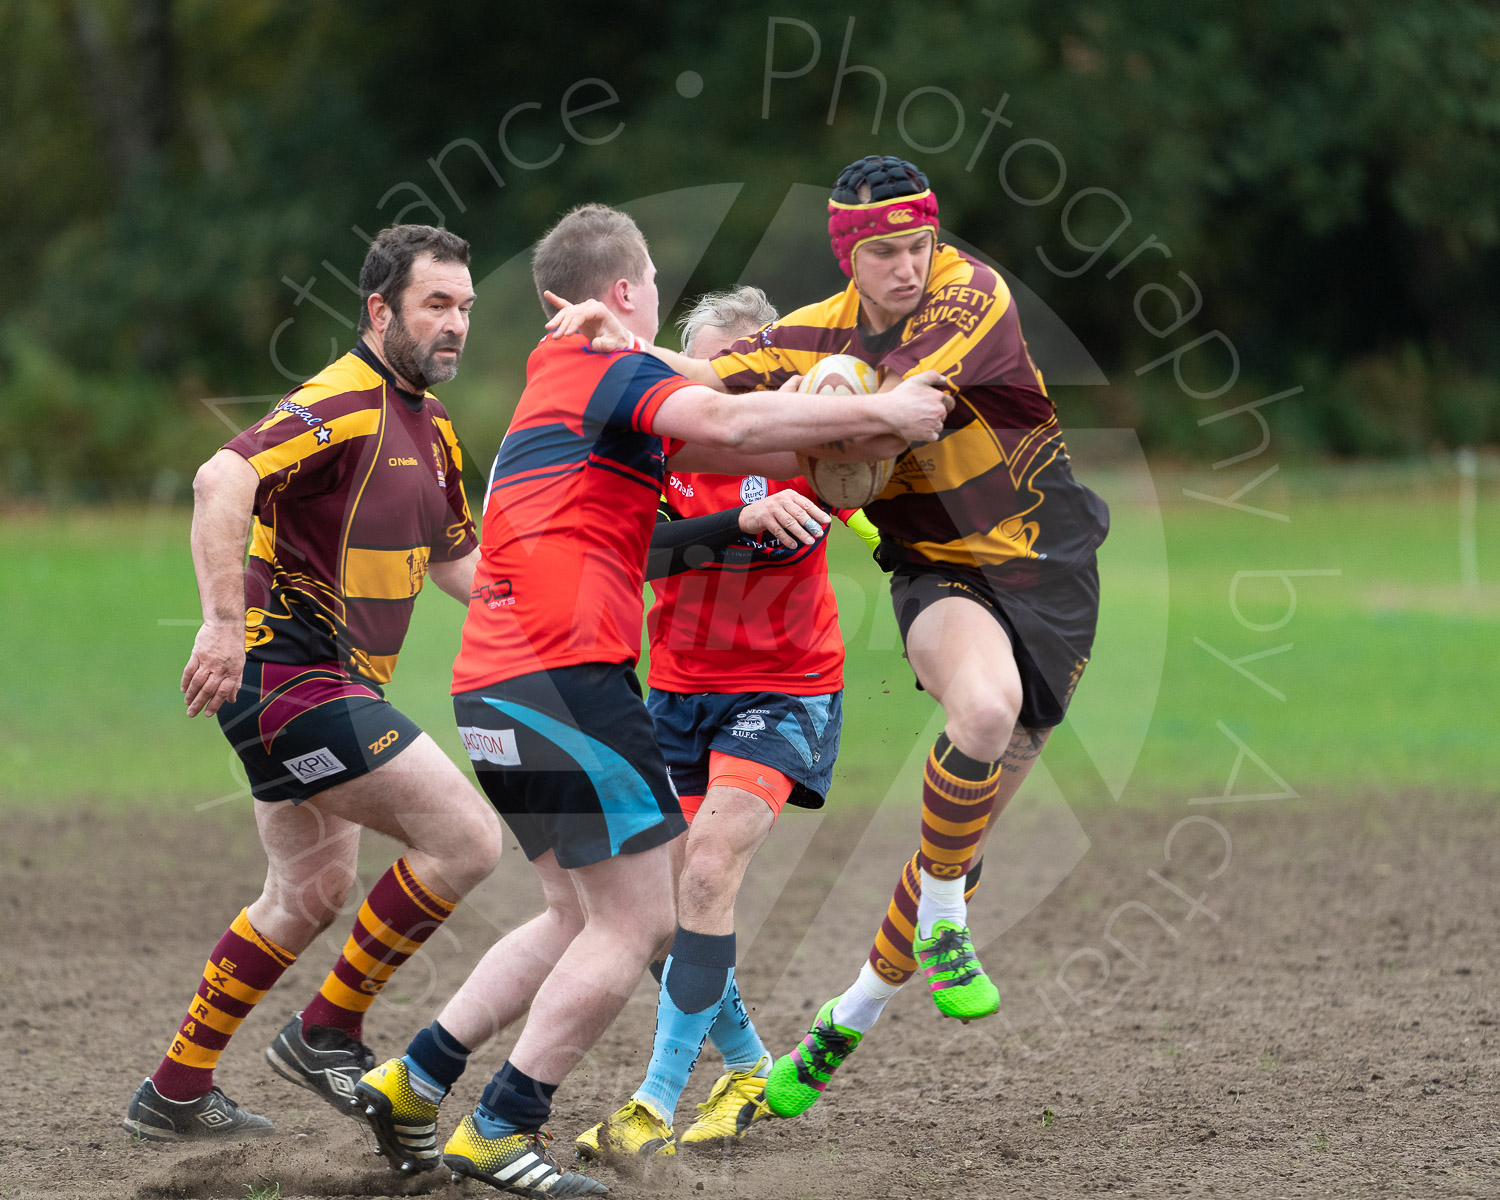 20181027 Amp Extras vs St Neots 2nd XV #2187